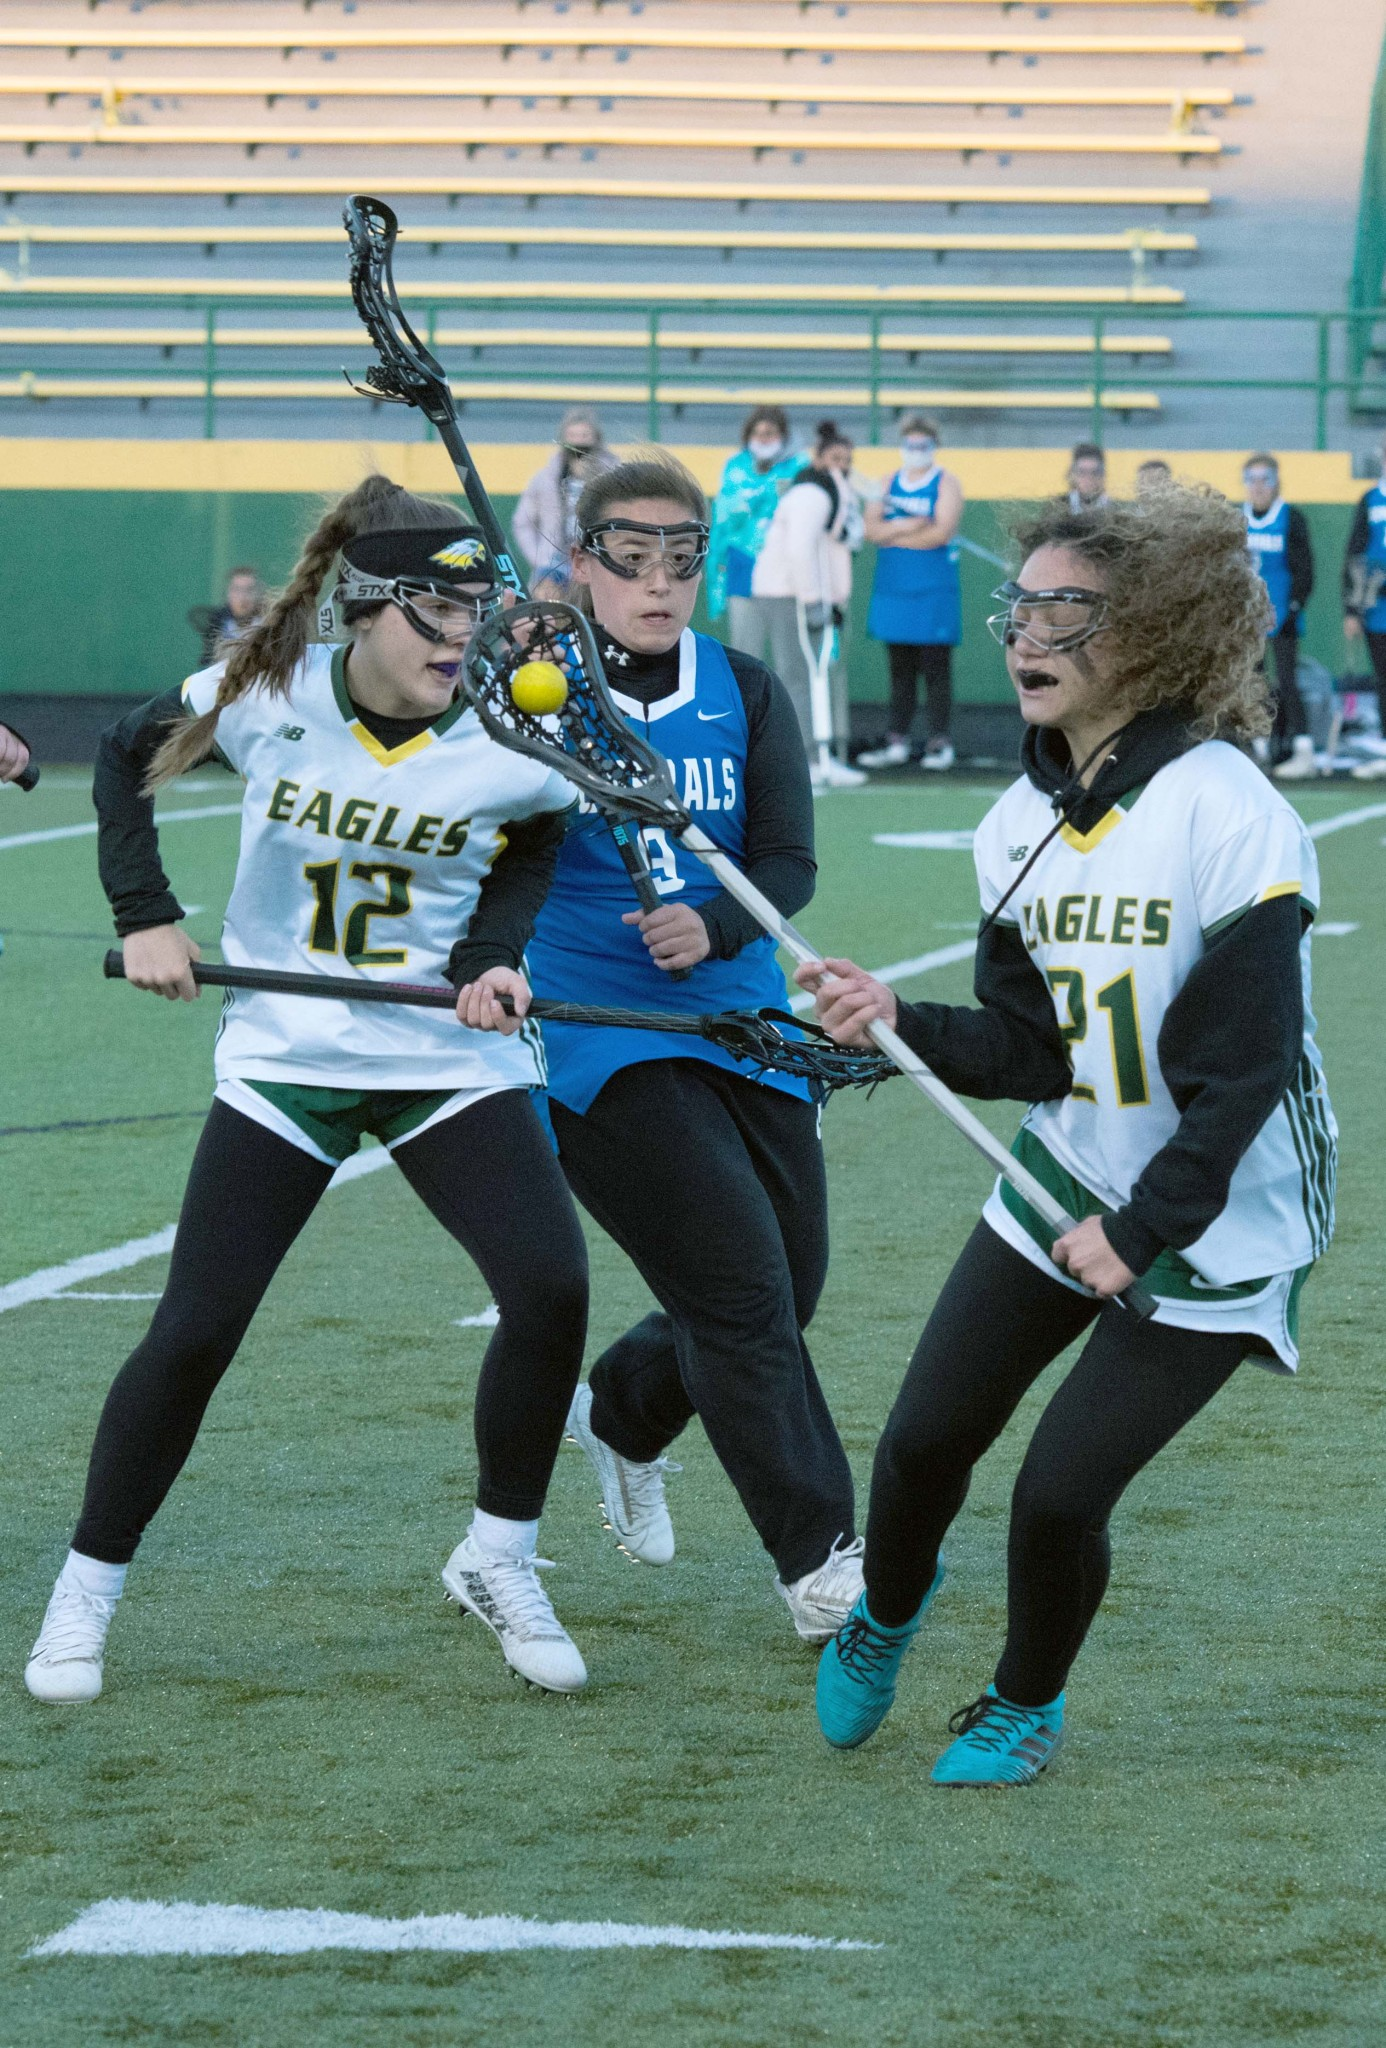 """Clay junior attack Hannah Haas (12) and freshman midfielder Kendra Stevens (21) try to fend off an Anthony Wayne defender. (Press photo by Russ Lytle/<a href=""""http://www.Facebook.com/RussLytle/RHP"""">www.Facebook.com/RussLytle/RHP</a>)"""